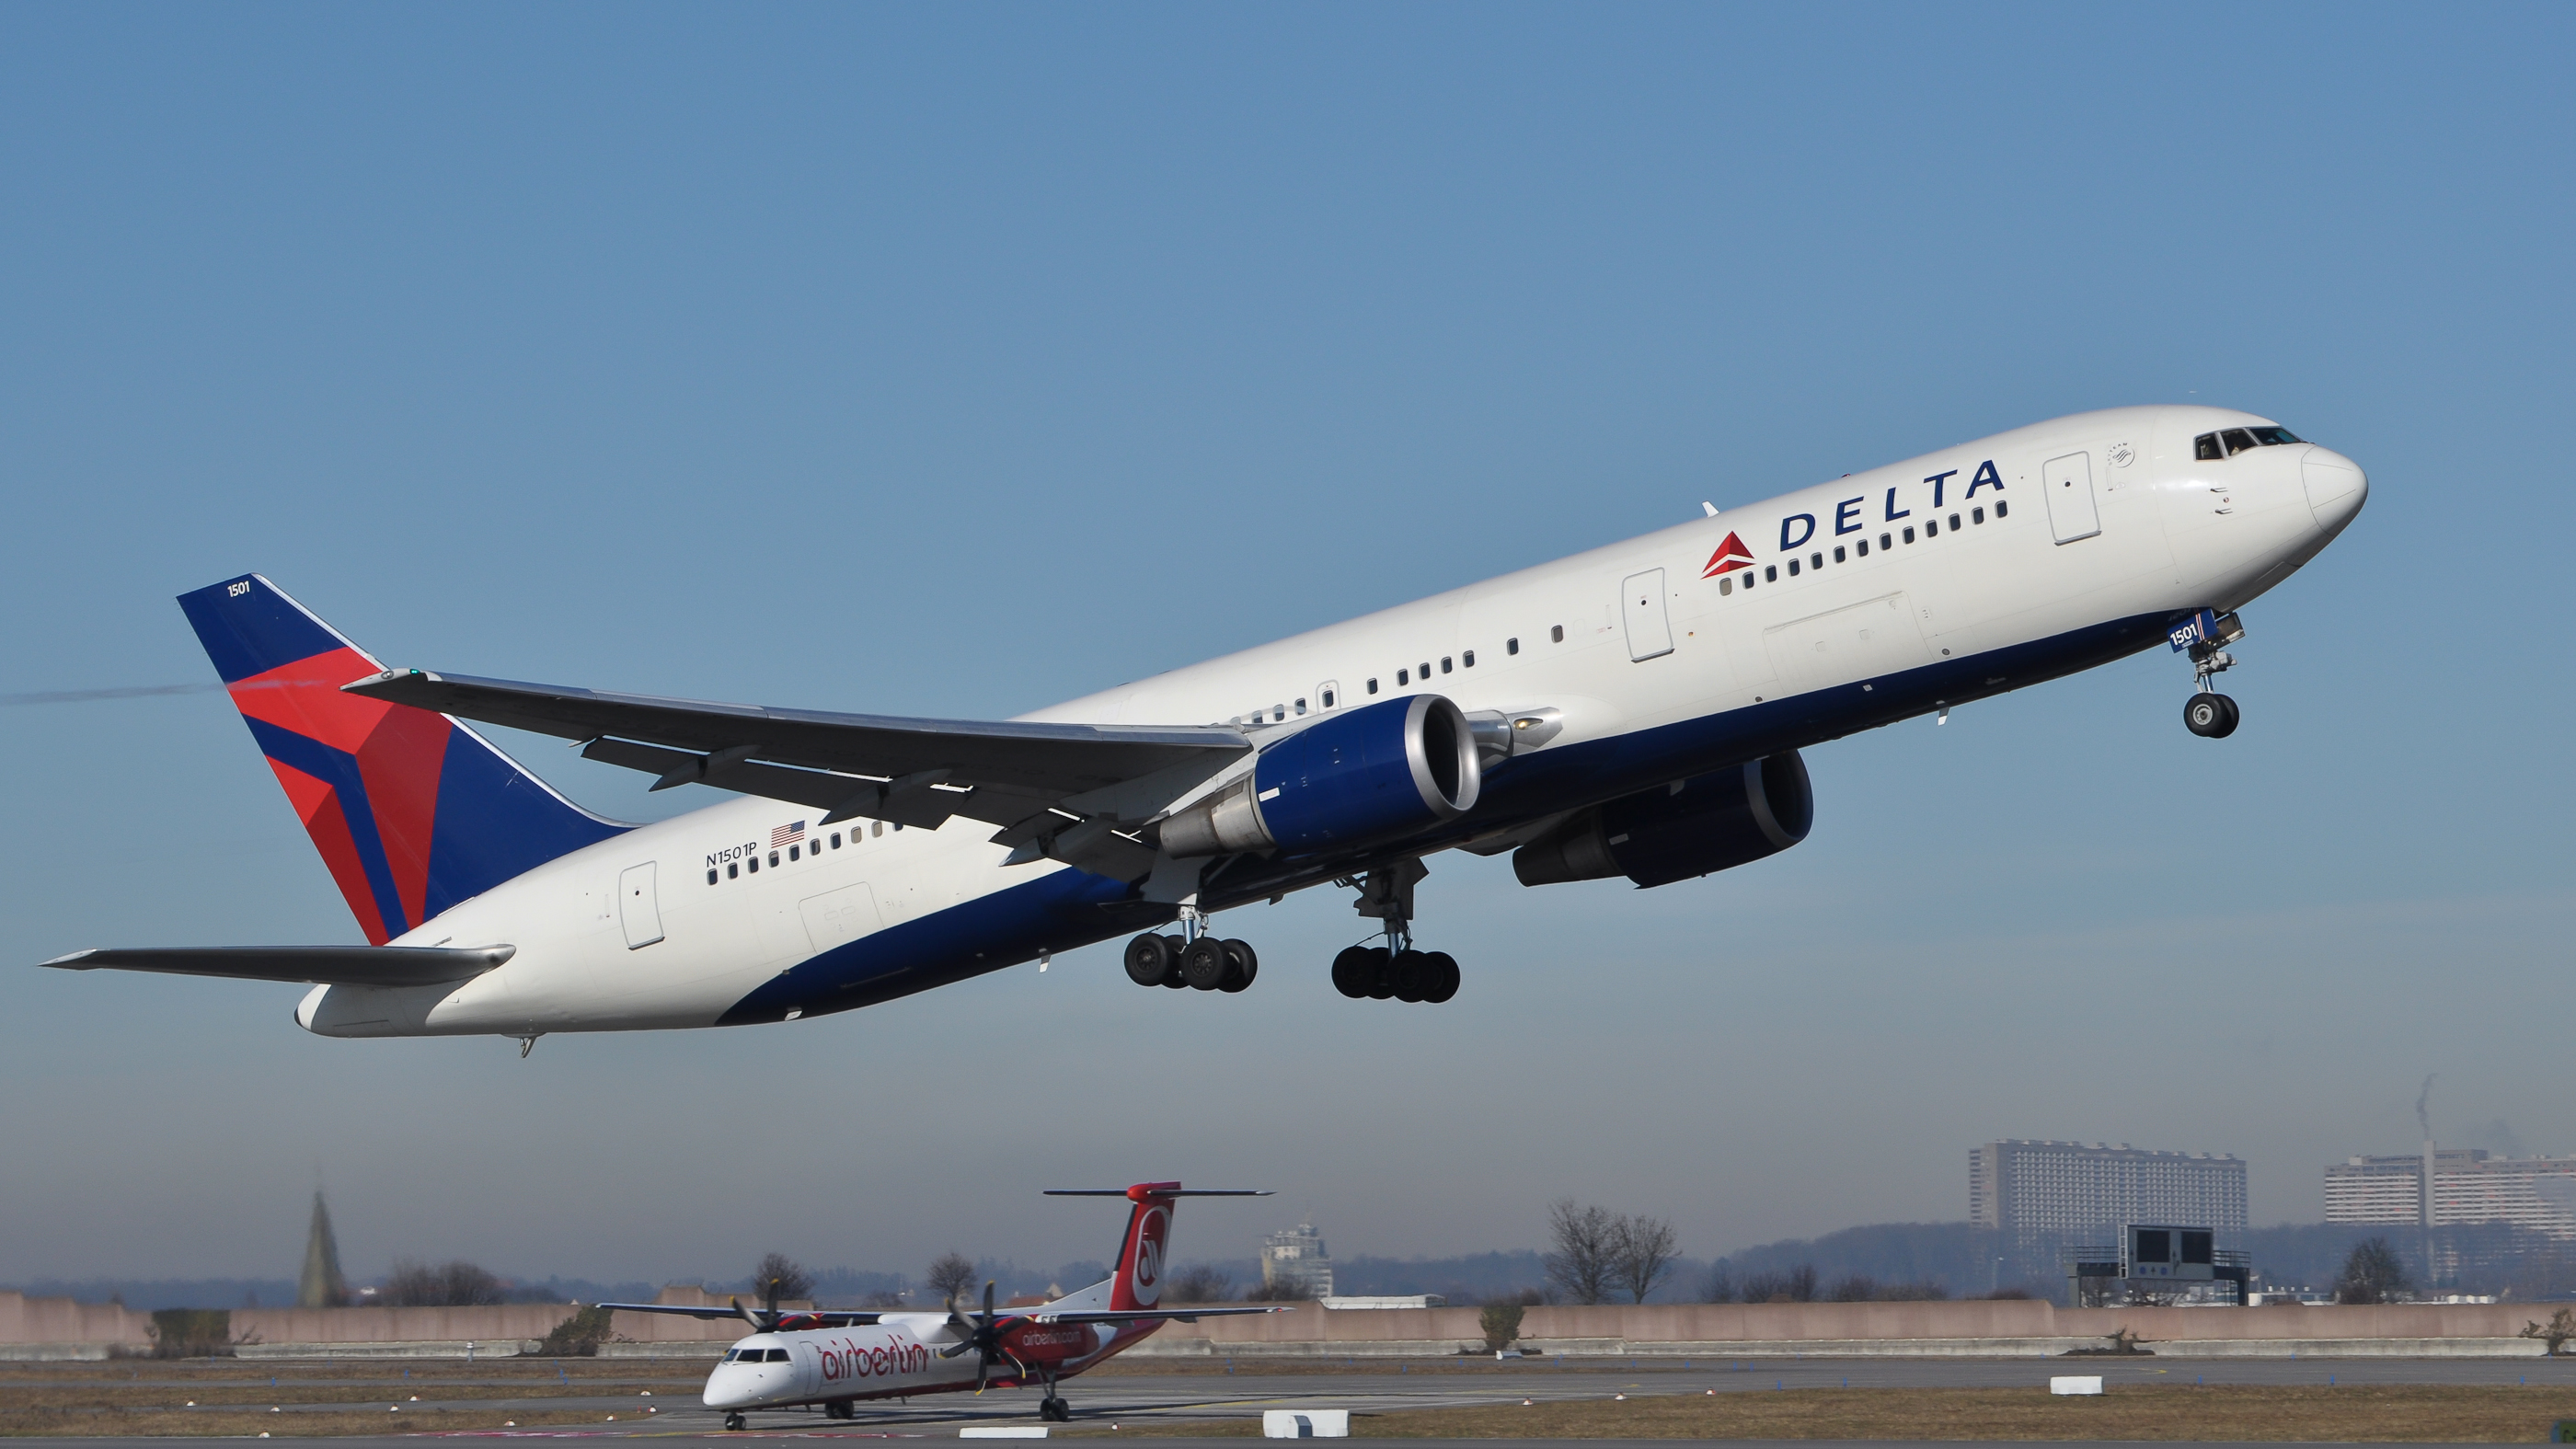 Delta Air Lines submits grant application as it burns cash